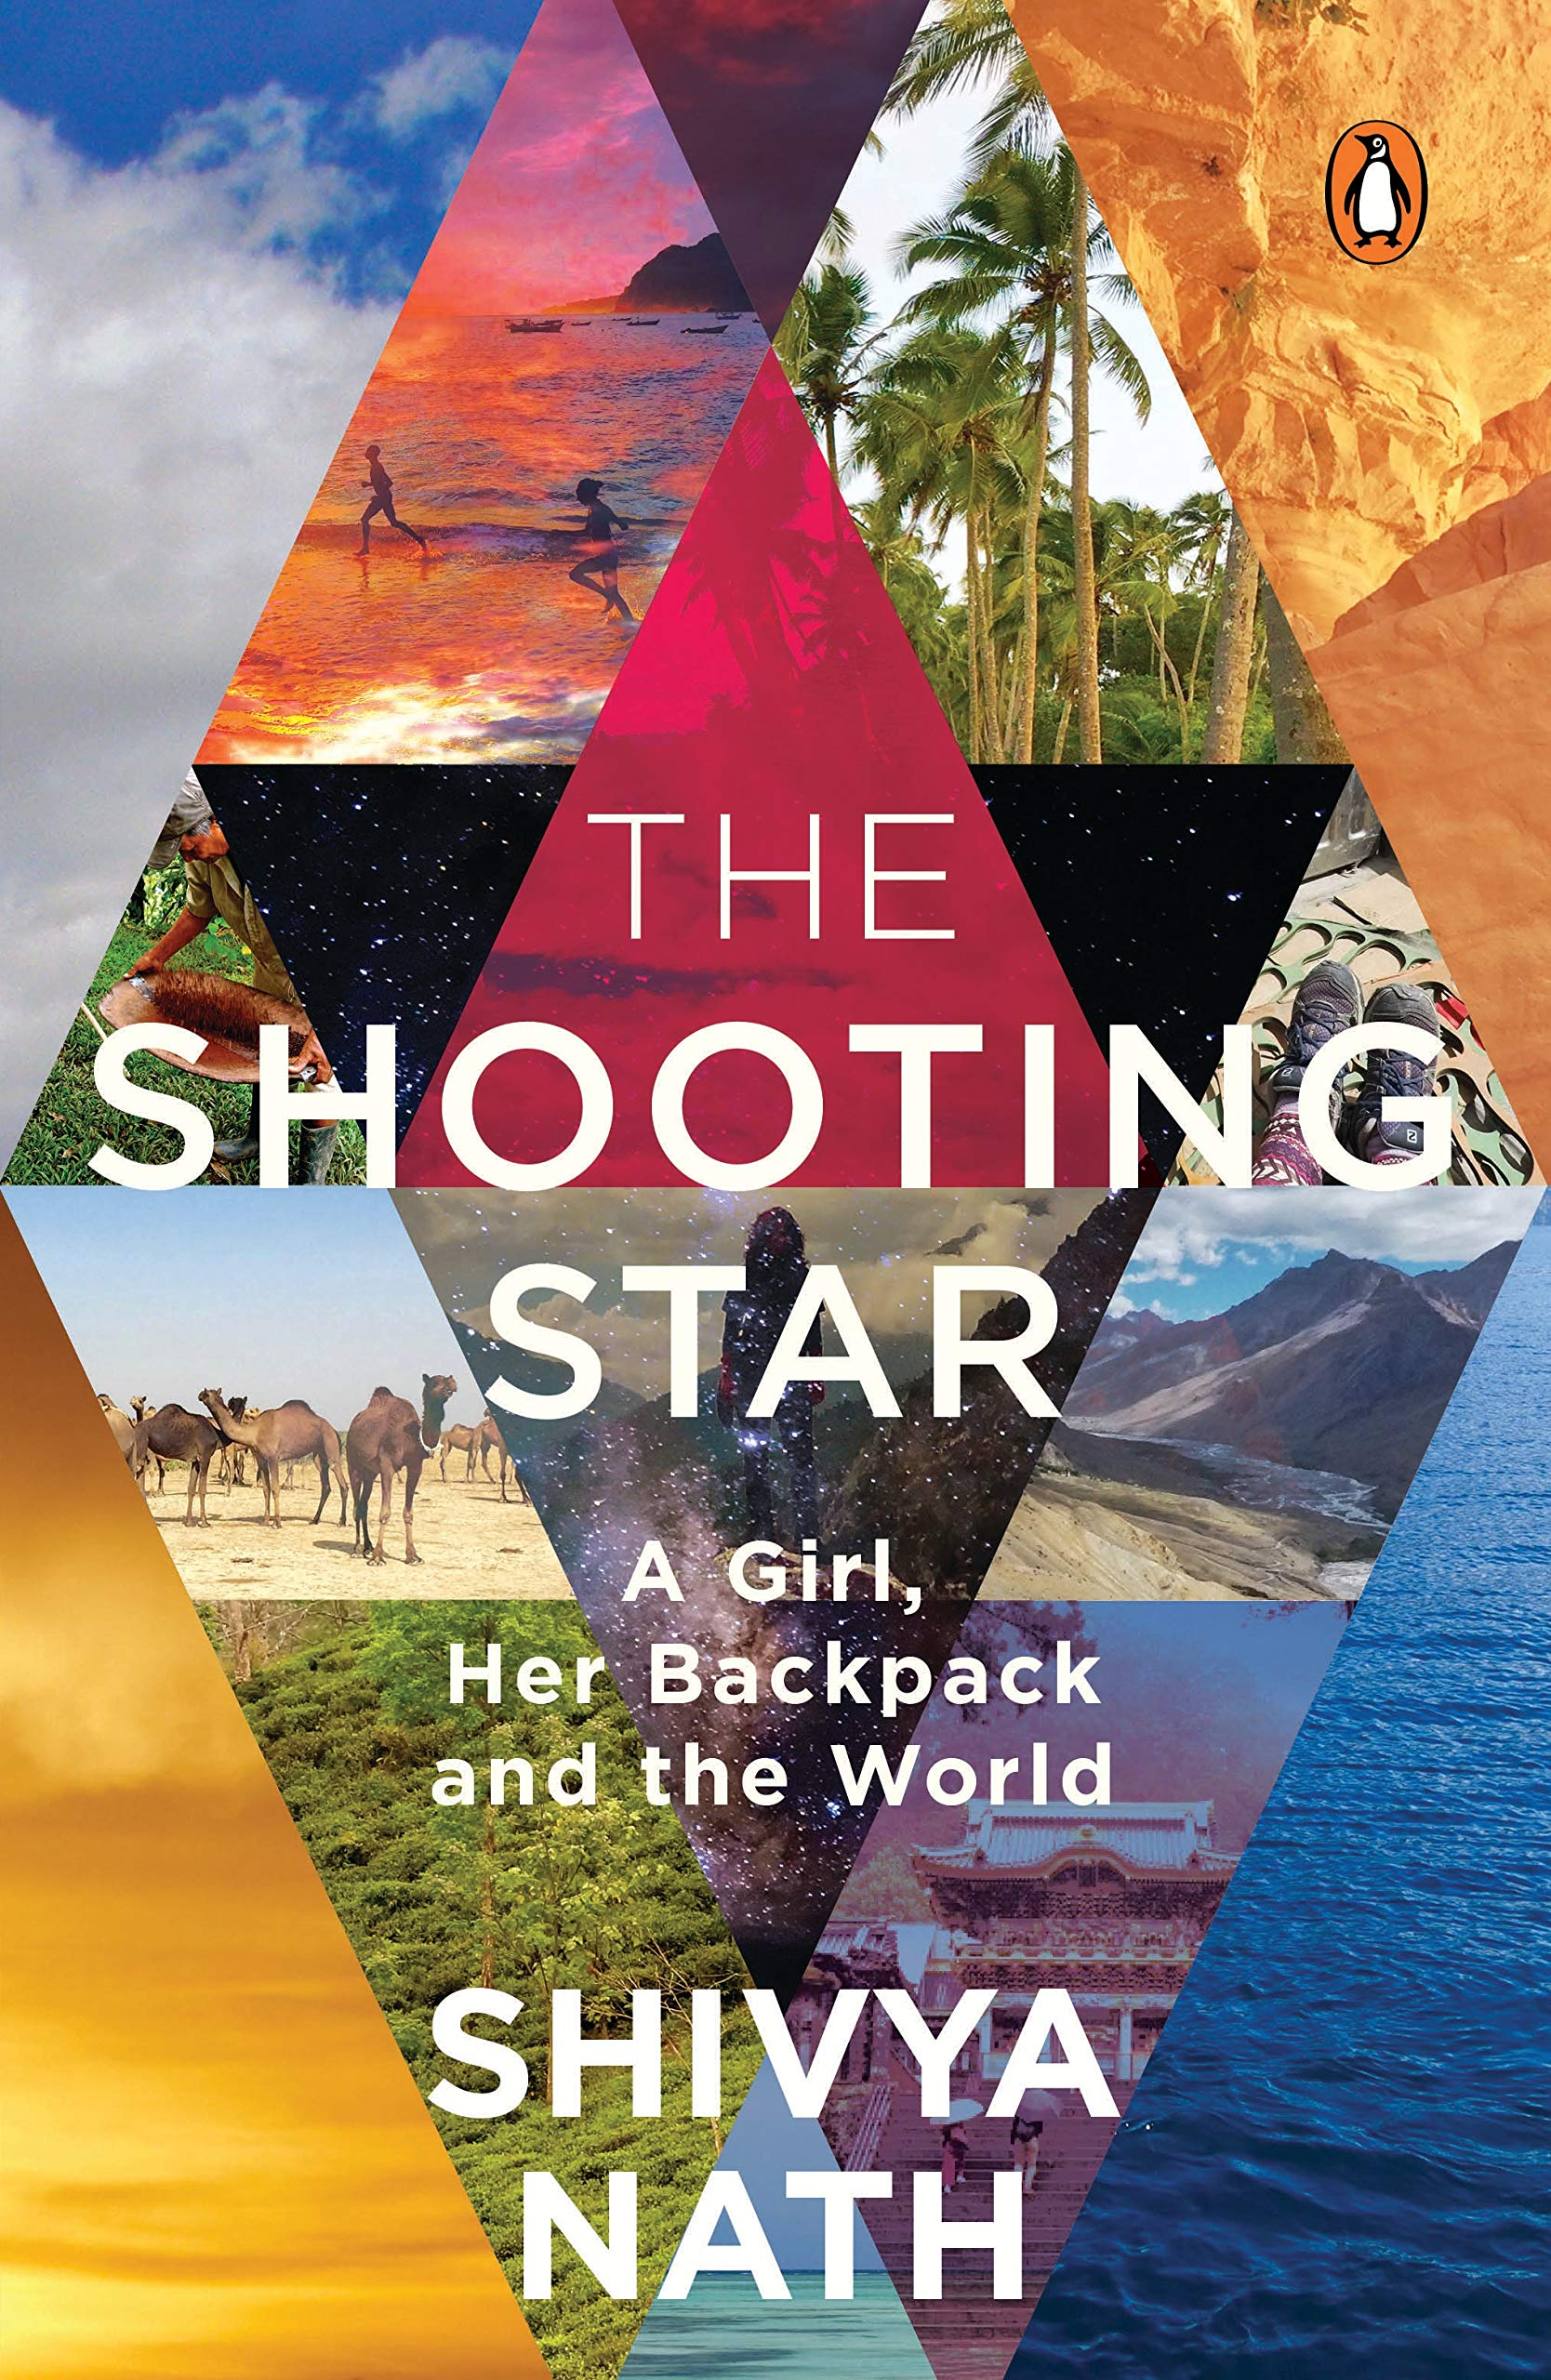 Buy The Shooting Star: A Girl, Her Backpack and the World Book Online at  Low Prices in India | The Shooting Star: A Girl, Her Backpack and the World  Reviews ...